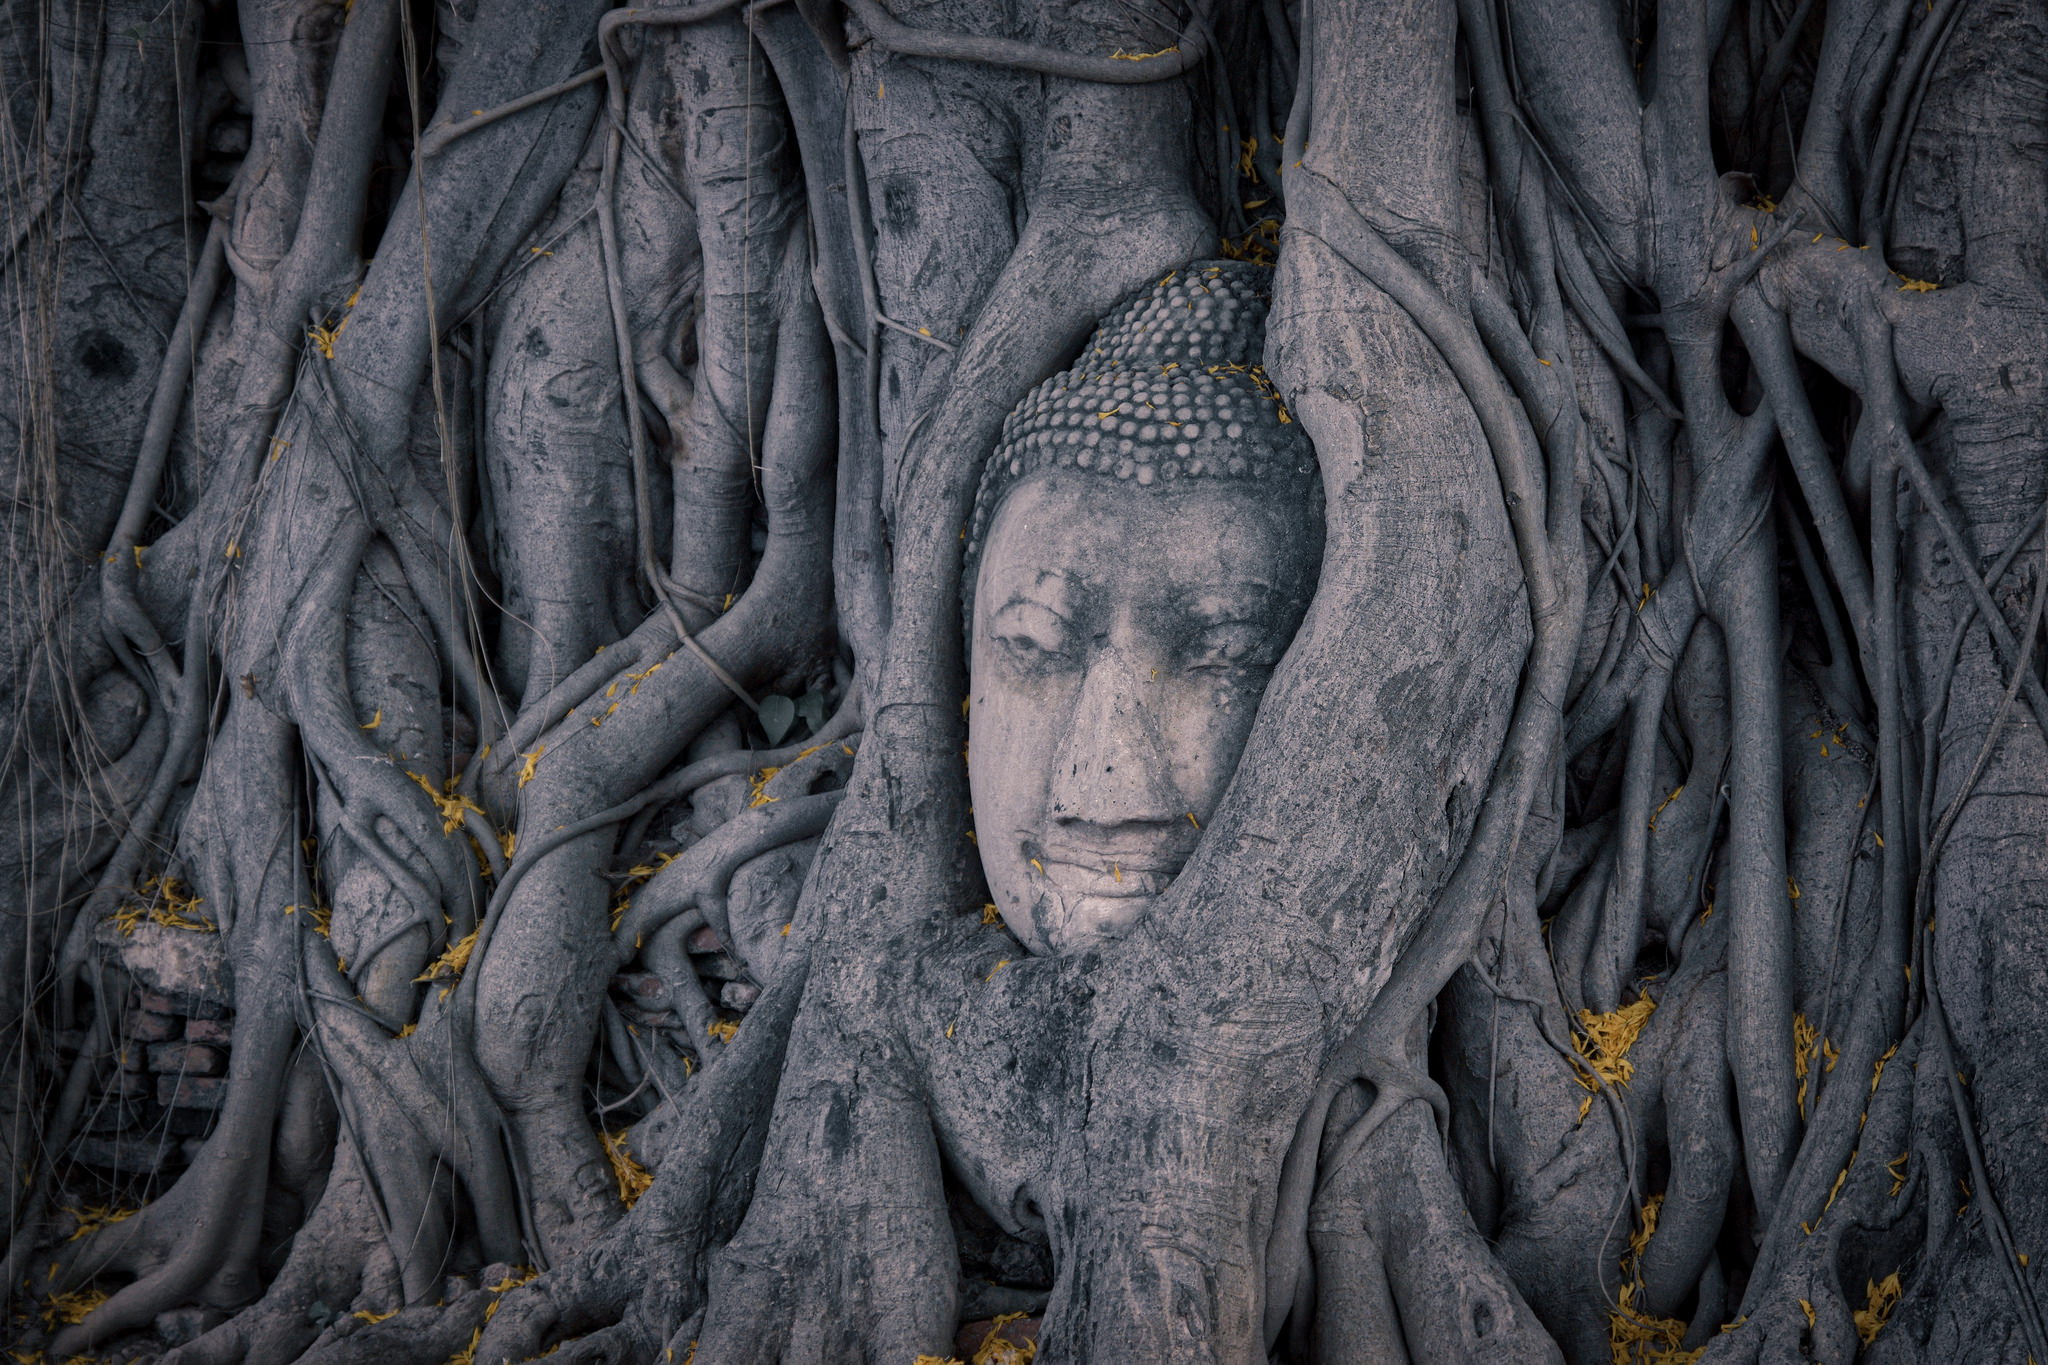 A buddha face engulfed by grey tree roots